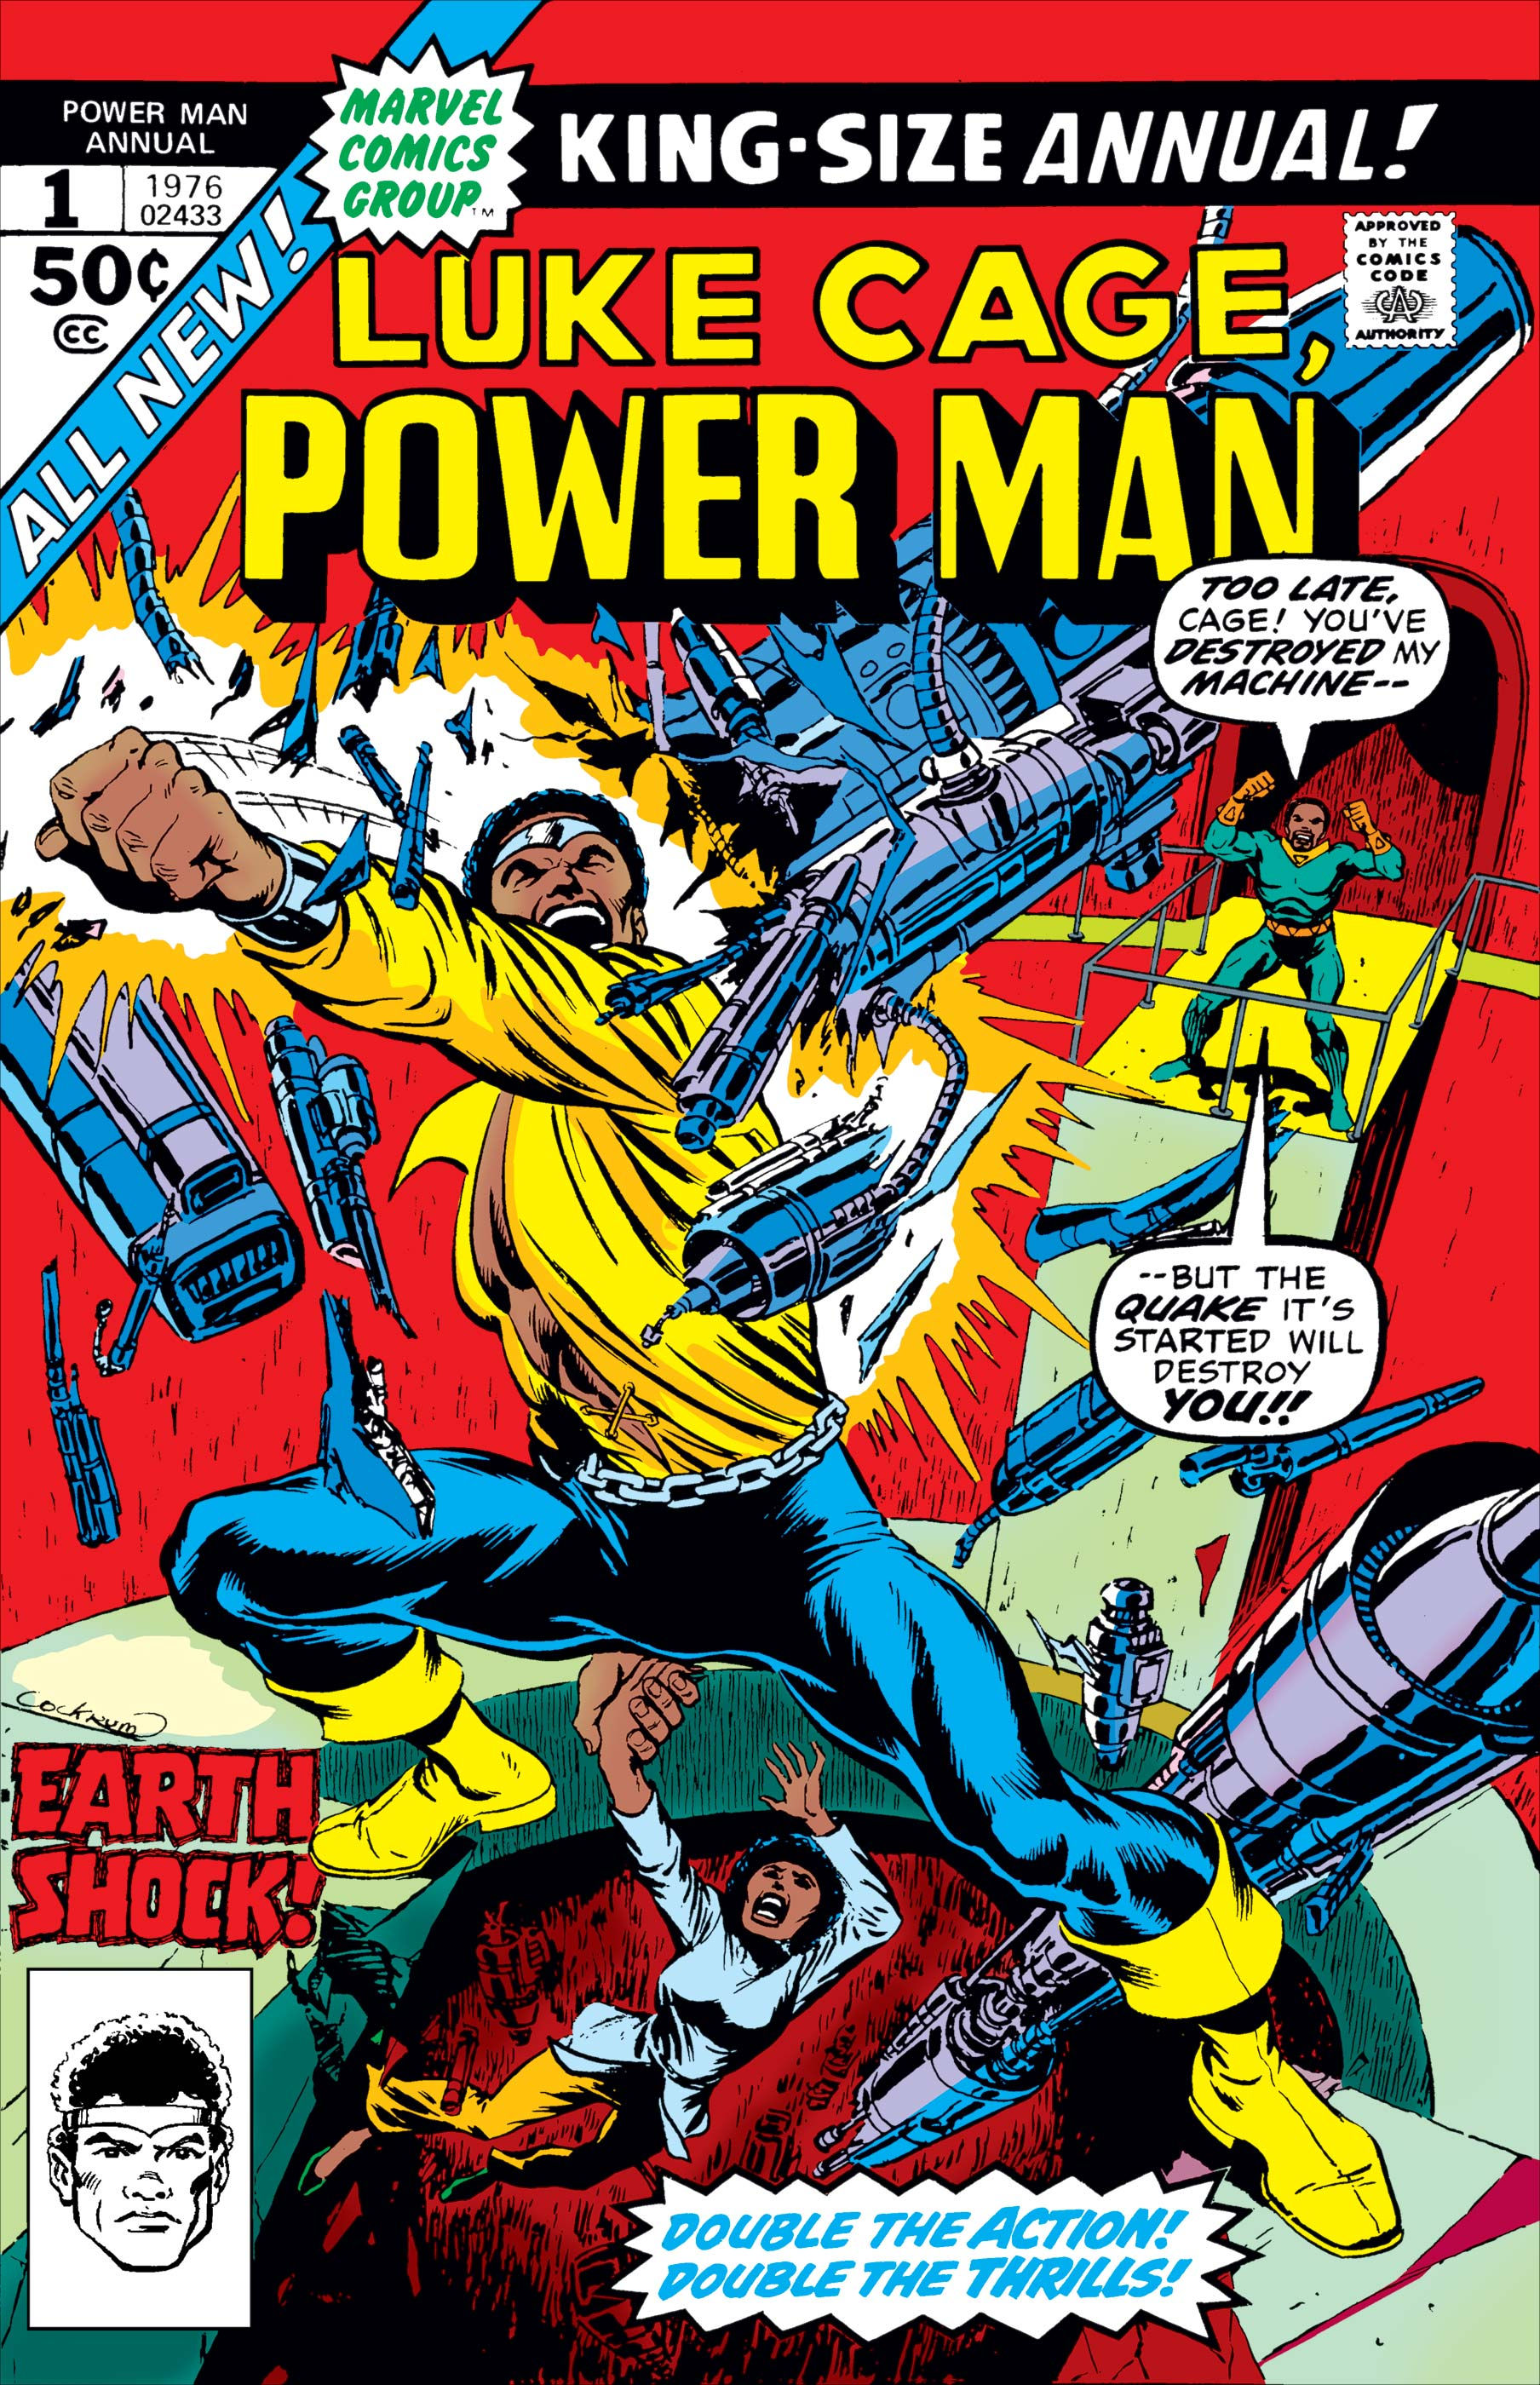 Power Man Annual (1976) #1